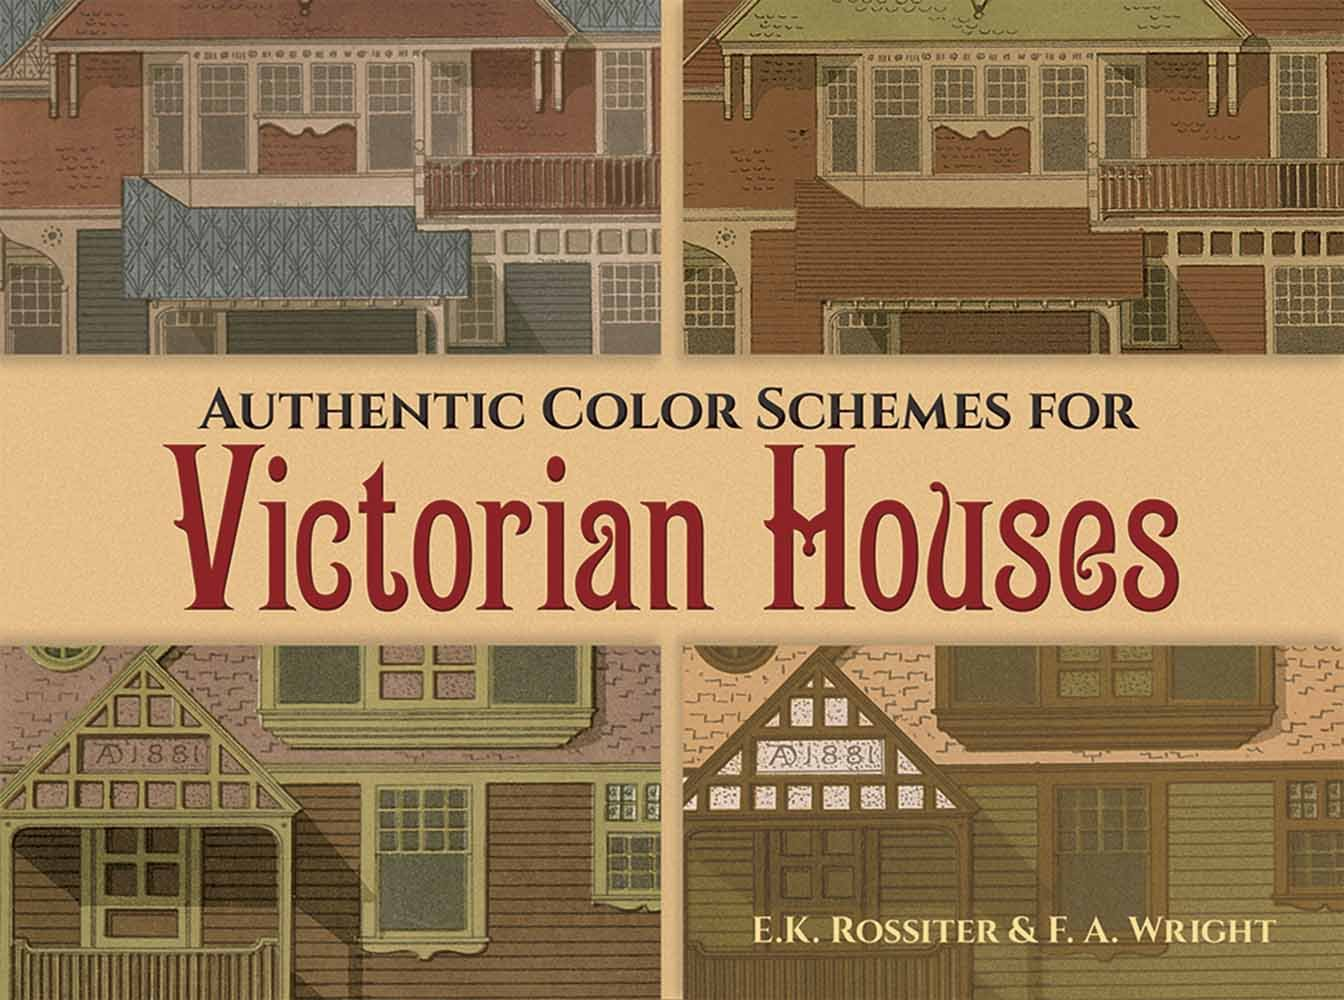 High Quality Authentic Color Schemes For Victorian Houses: Comstocku0027s Modern House  Painting, 1883 (Dover Architecture): E. K. Rossiter, F. A. Wright:  9780486417745: ...